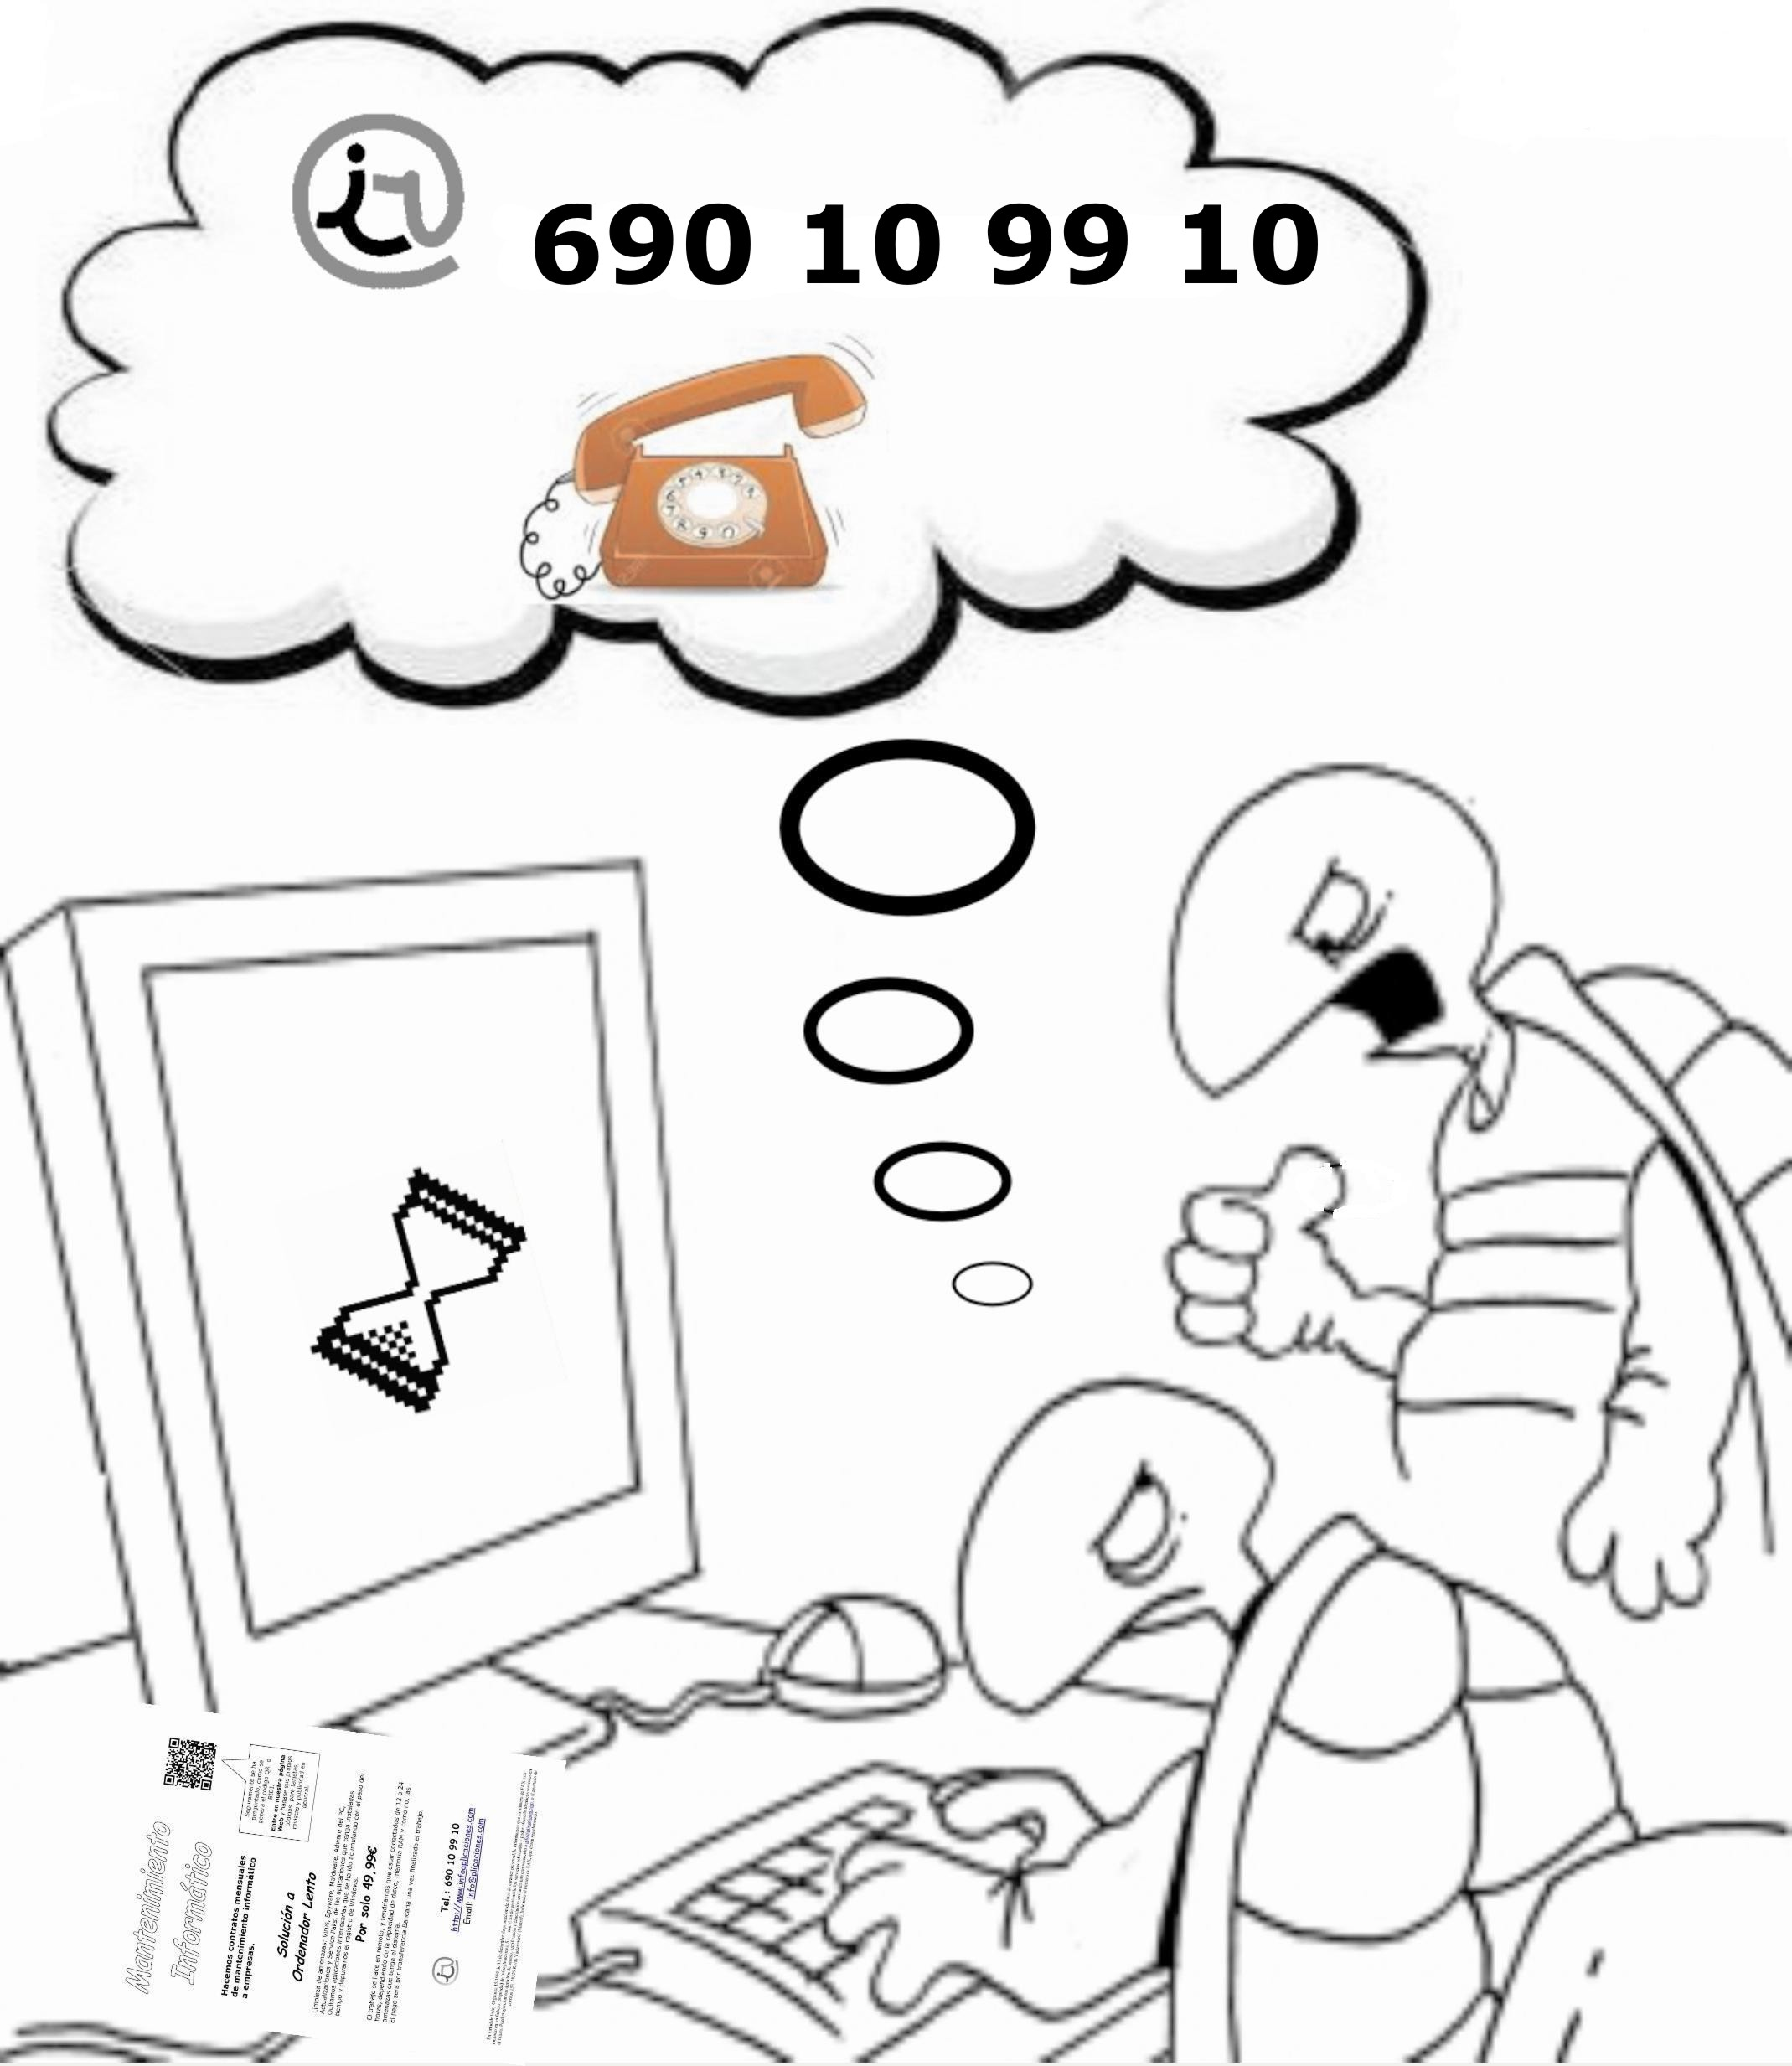 Reloj de arena reparar quitar-neutralizar-virus-ordenador-lento-en-madrid-calle-el-praderon-parla-teo-barcelona-valencia-sevilla-zaragoza-tui-arreglar-windows-xp-vista-7-8-10-acelerar-internet-optimizar-portatil-limpiar-pc  internet ordenador pc windows xp vista 7 8.1 10